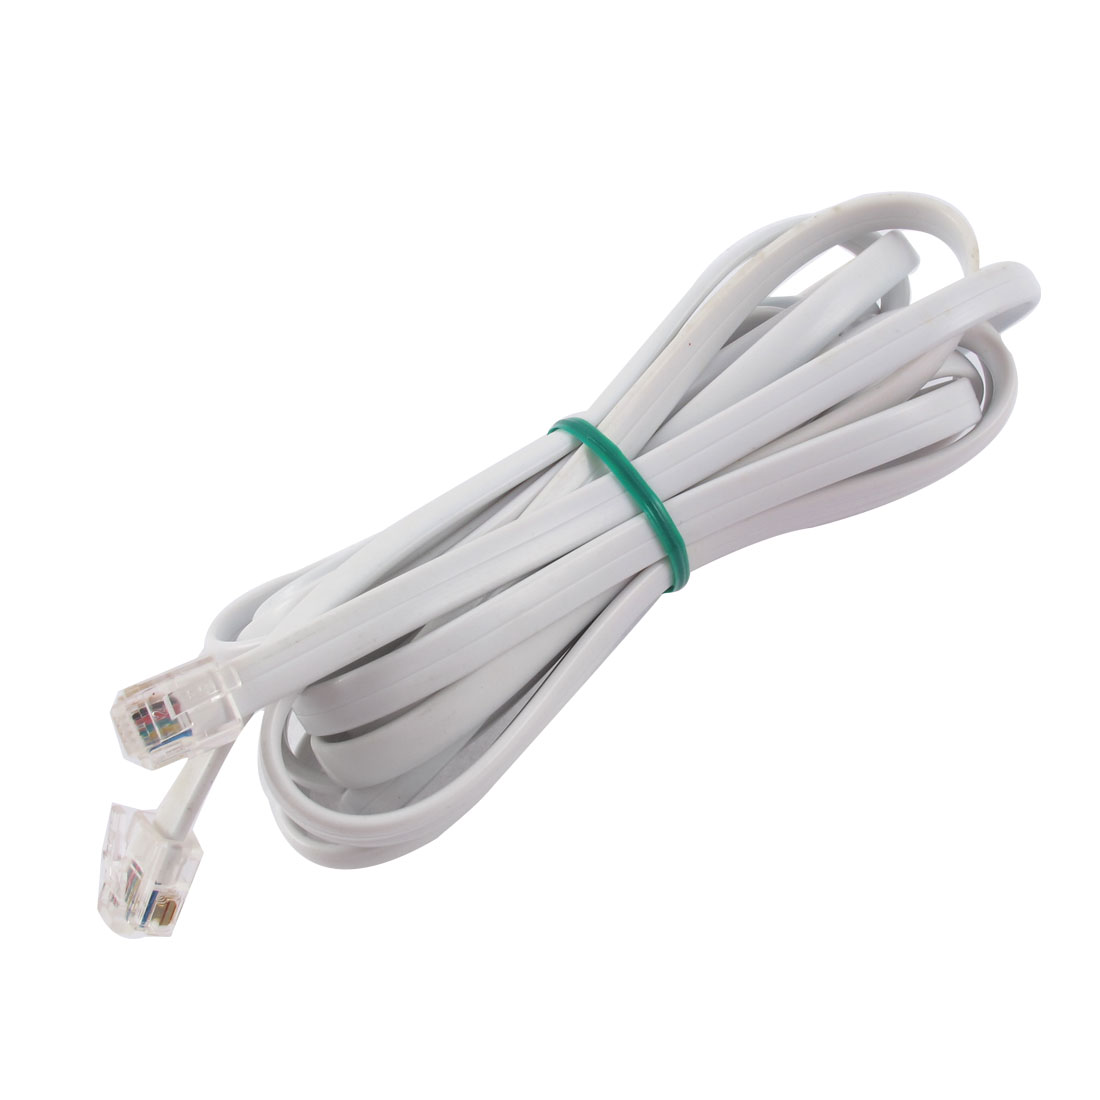 9.8Ft Length 6P6C RJ11 Telephone Extension Fax Modem Cable Line White